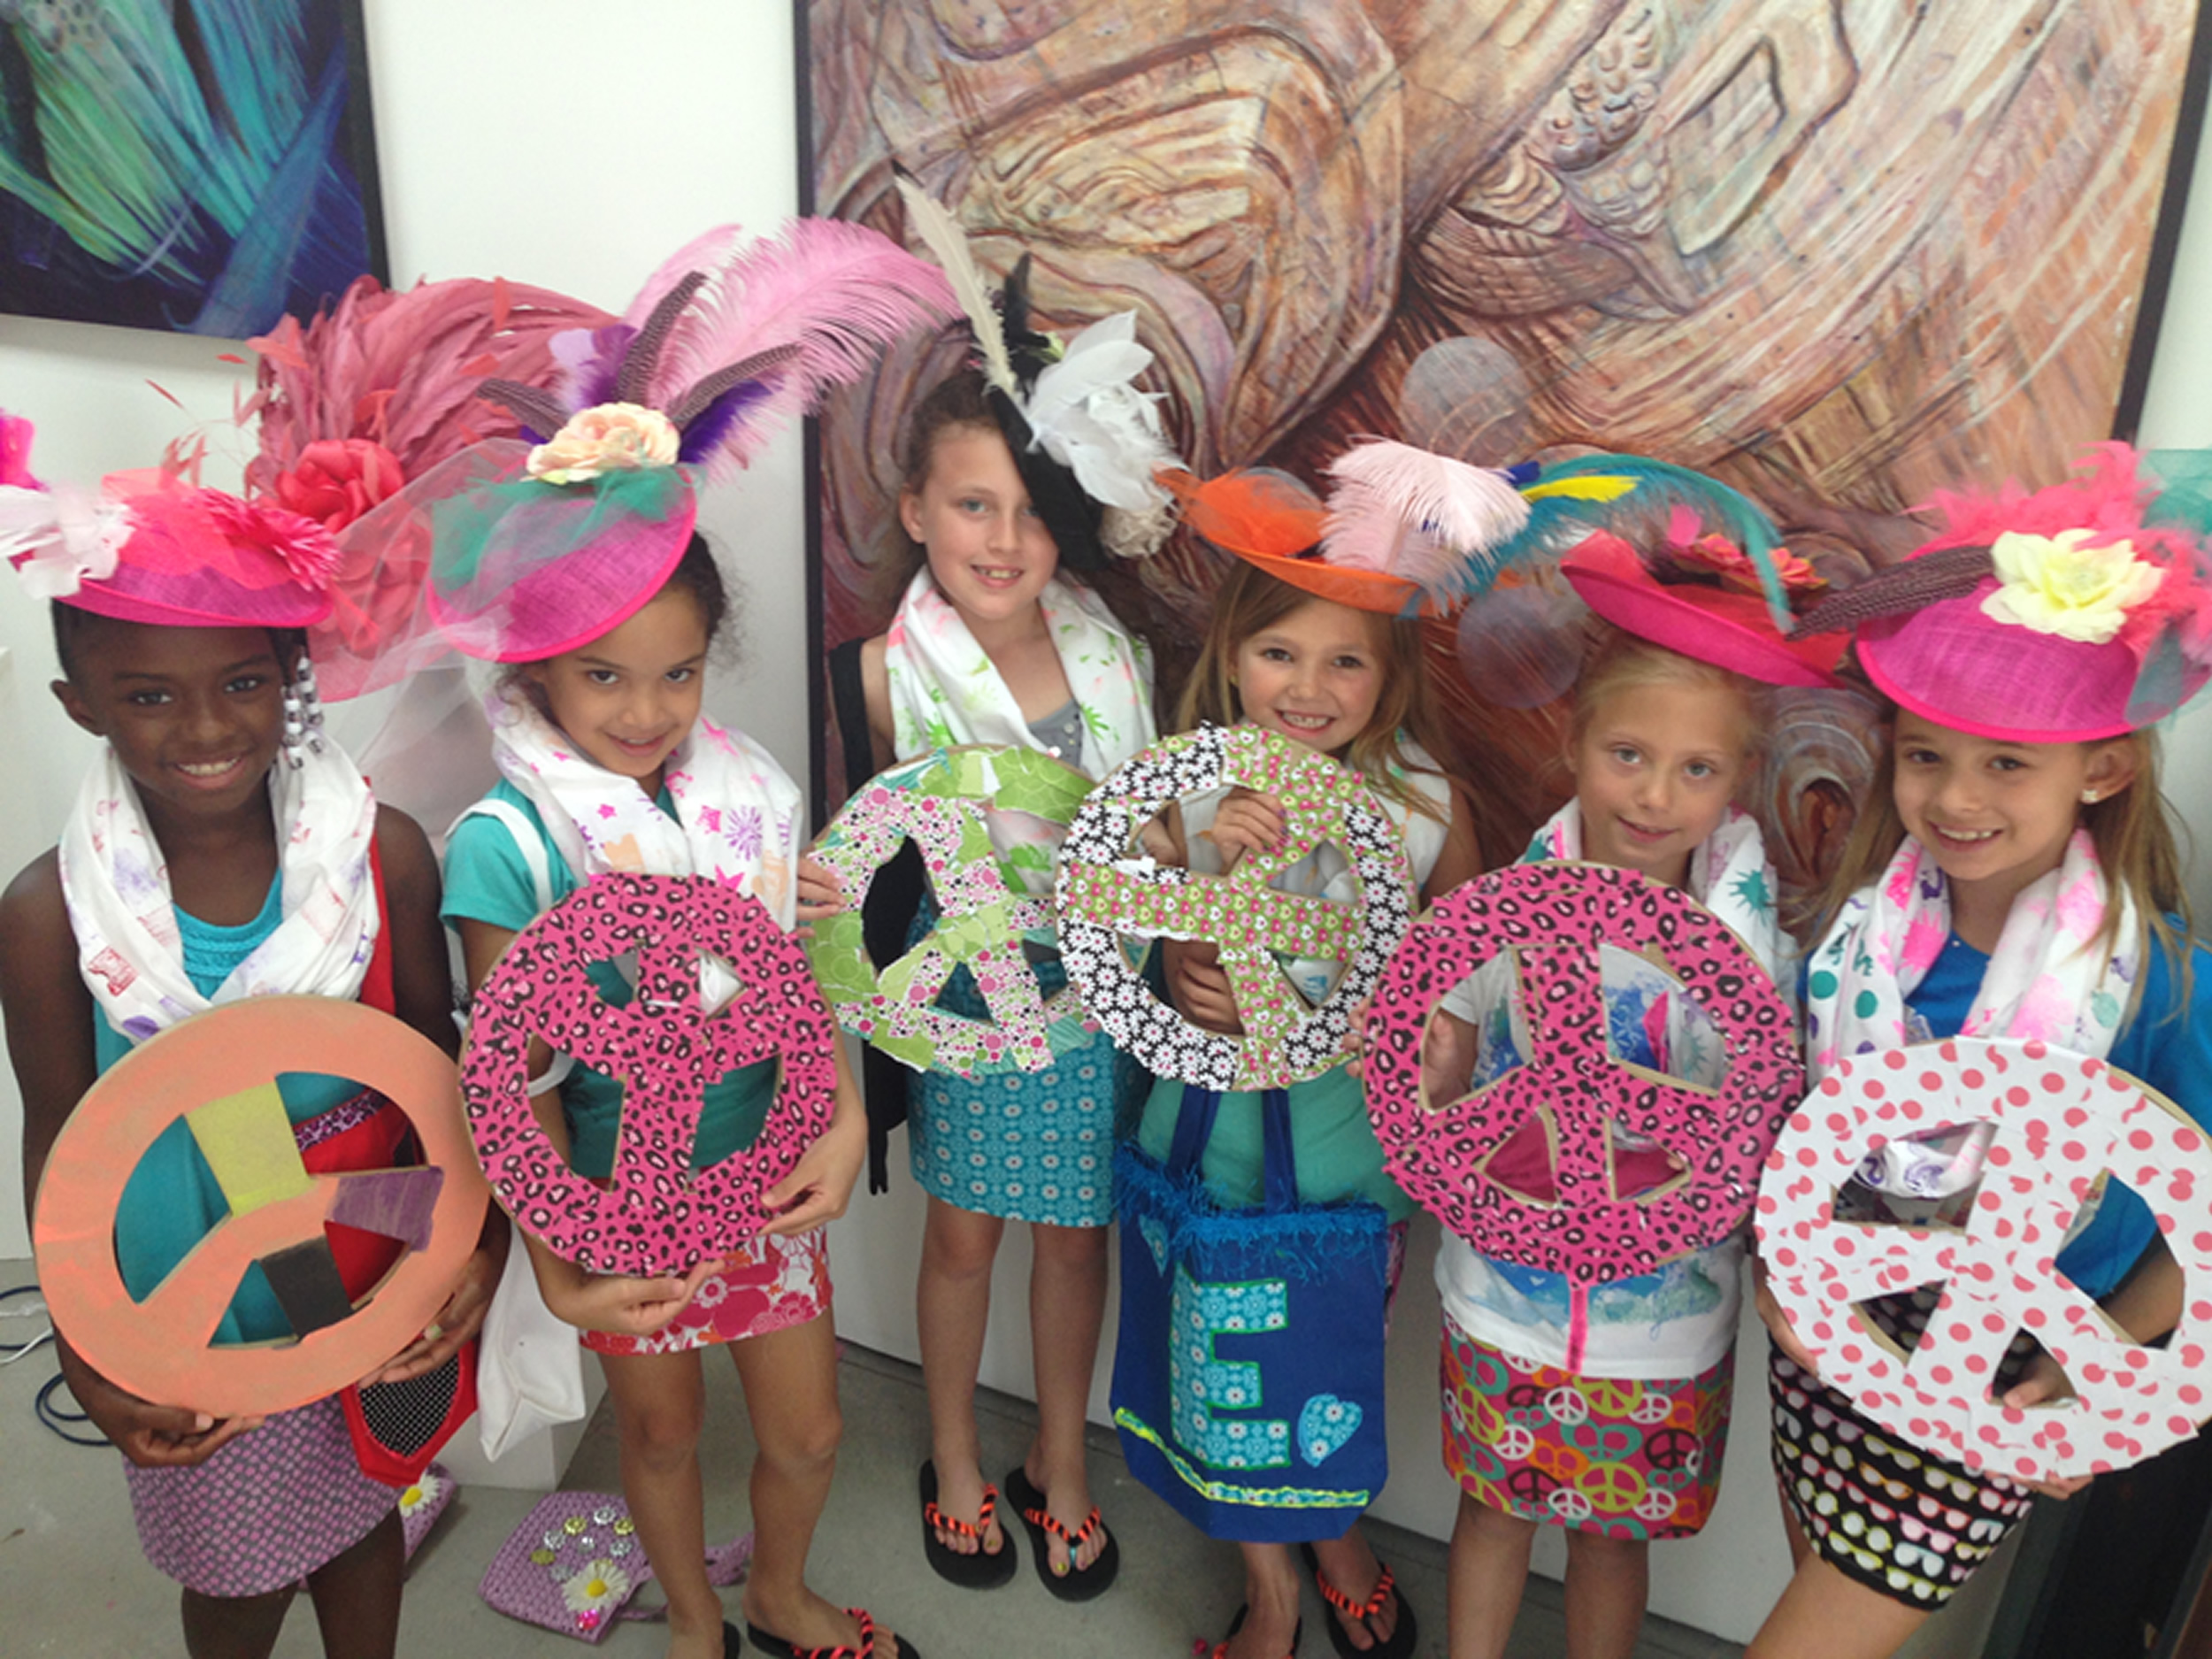 girls wearing derby hats and showing peace sign creations